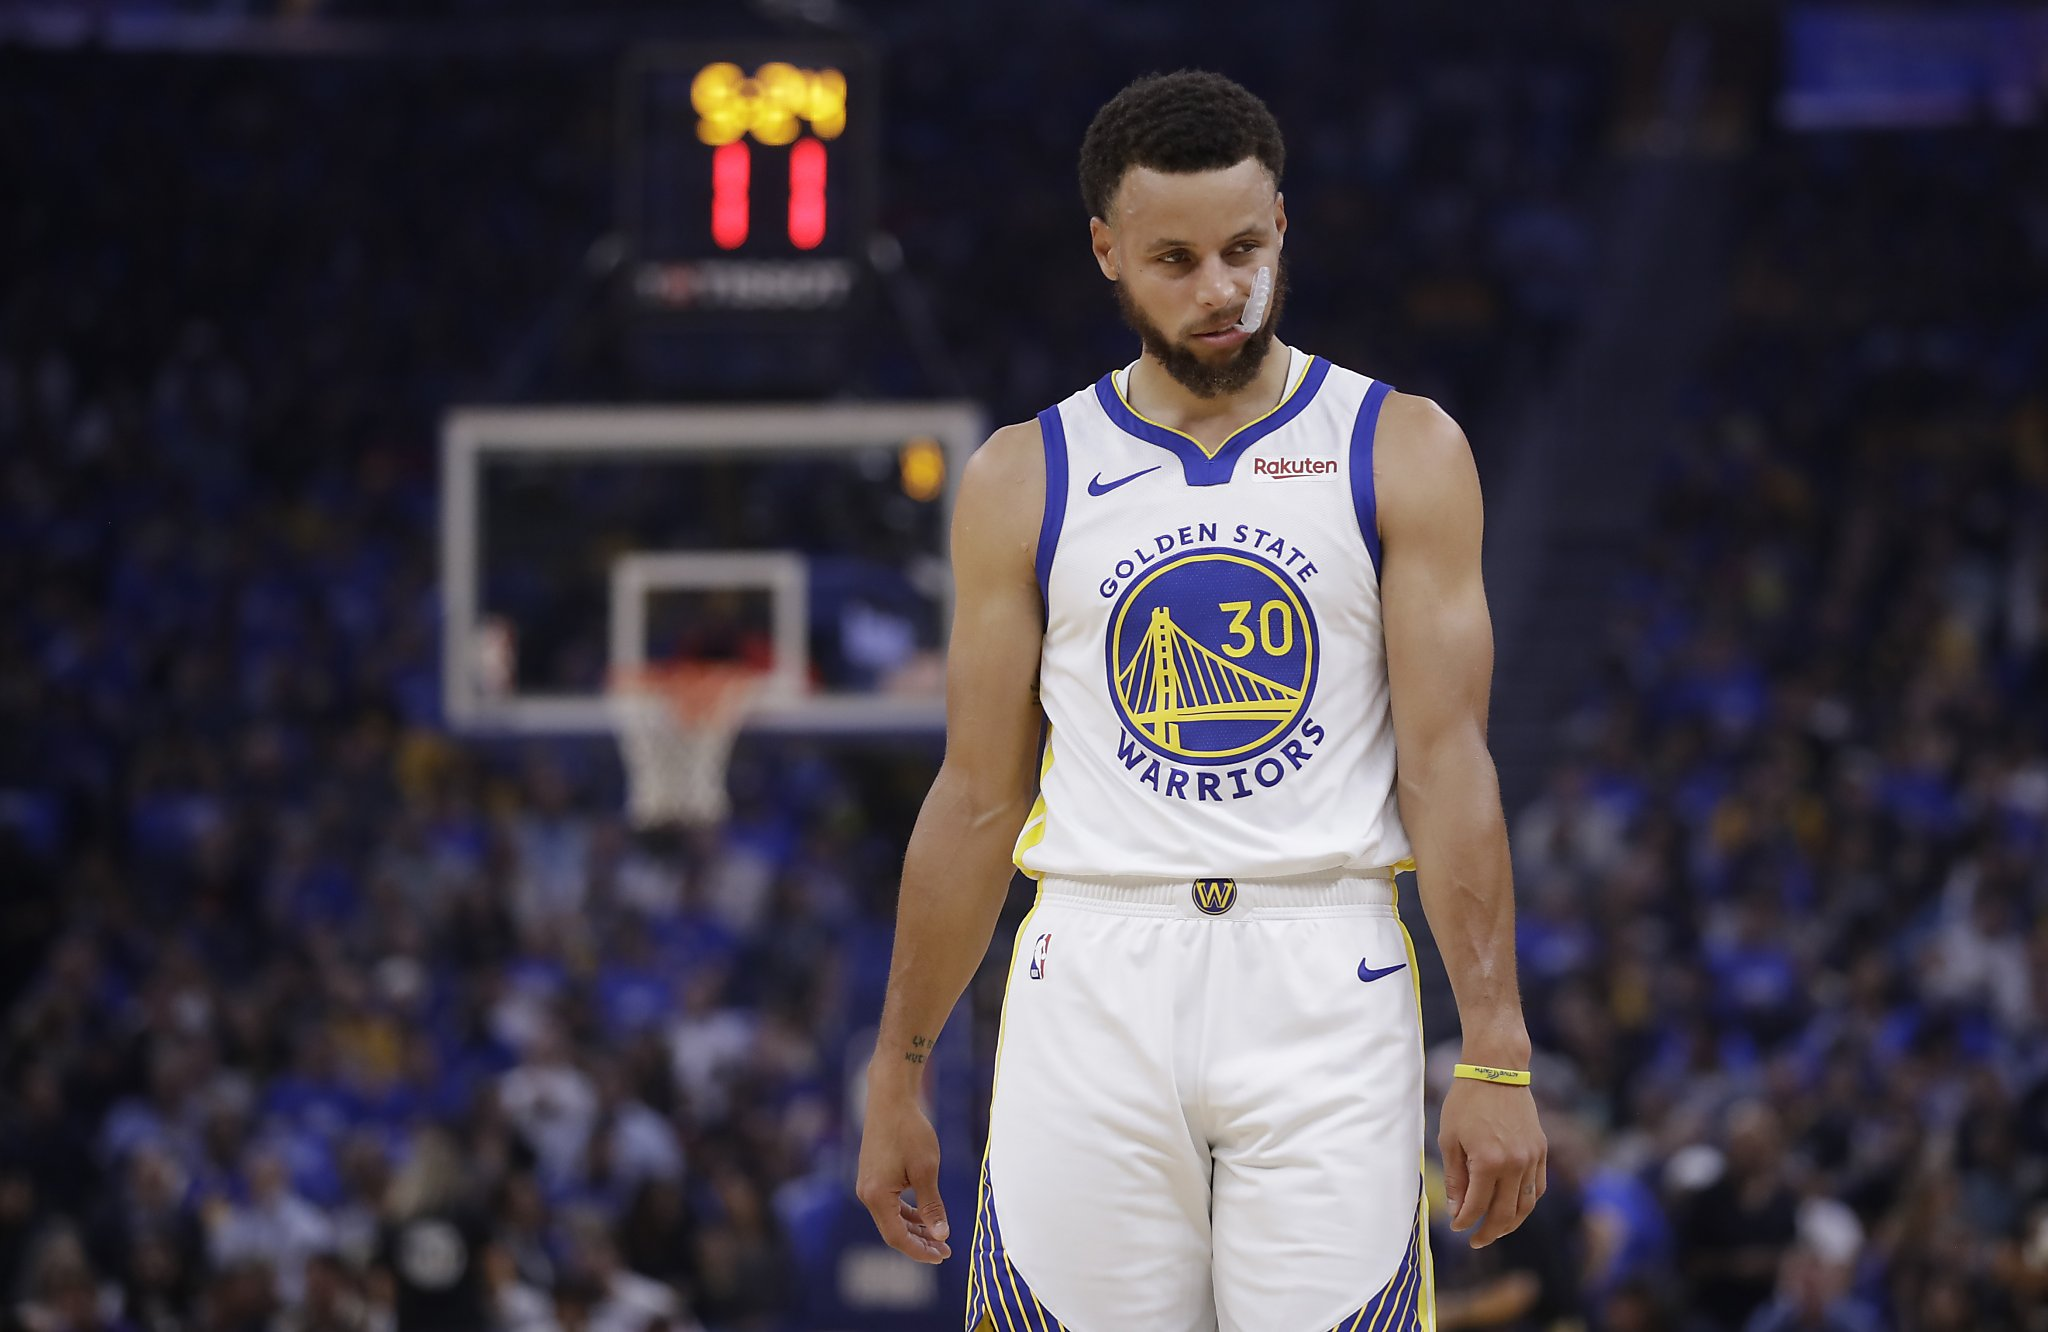 Warriors star Stephen Curry will chat live with Anthony Fauci on Thursday